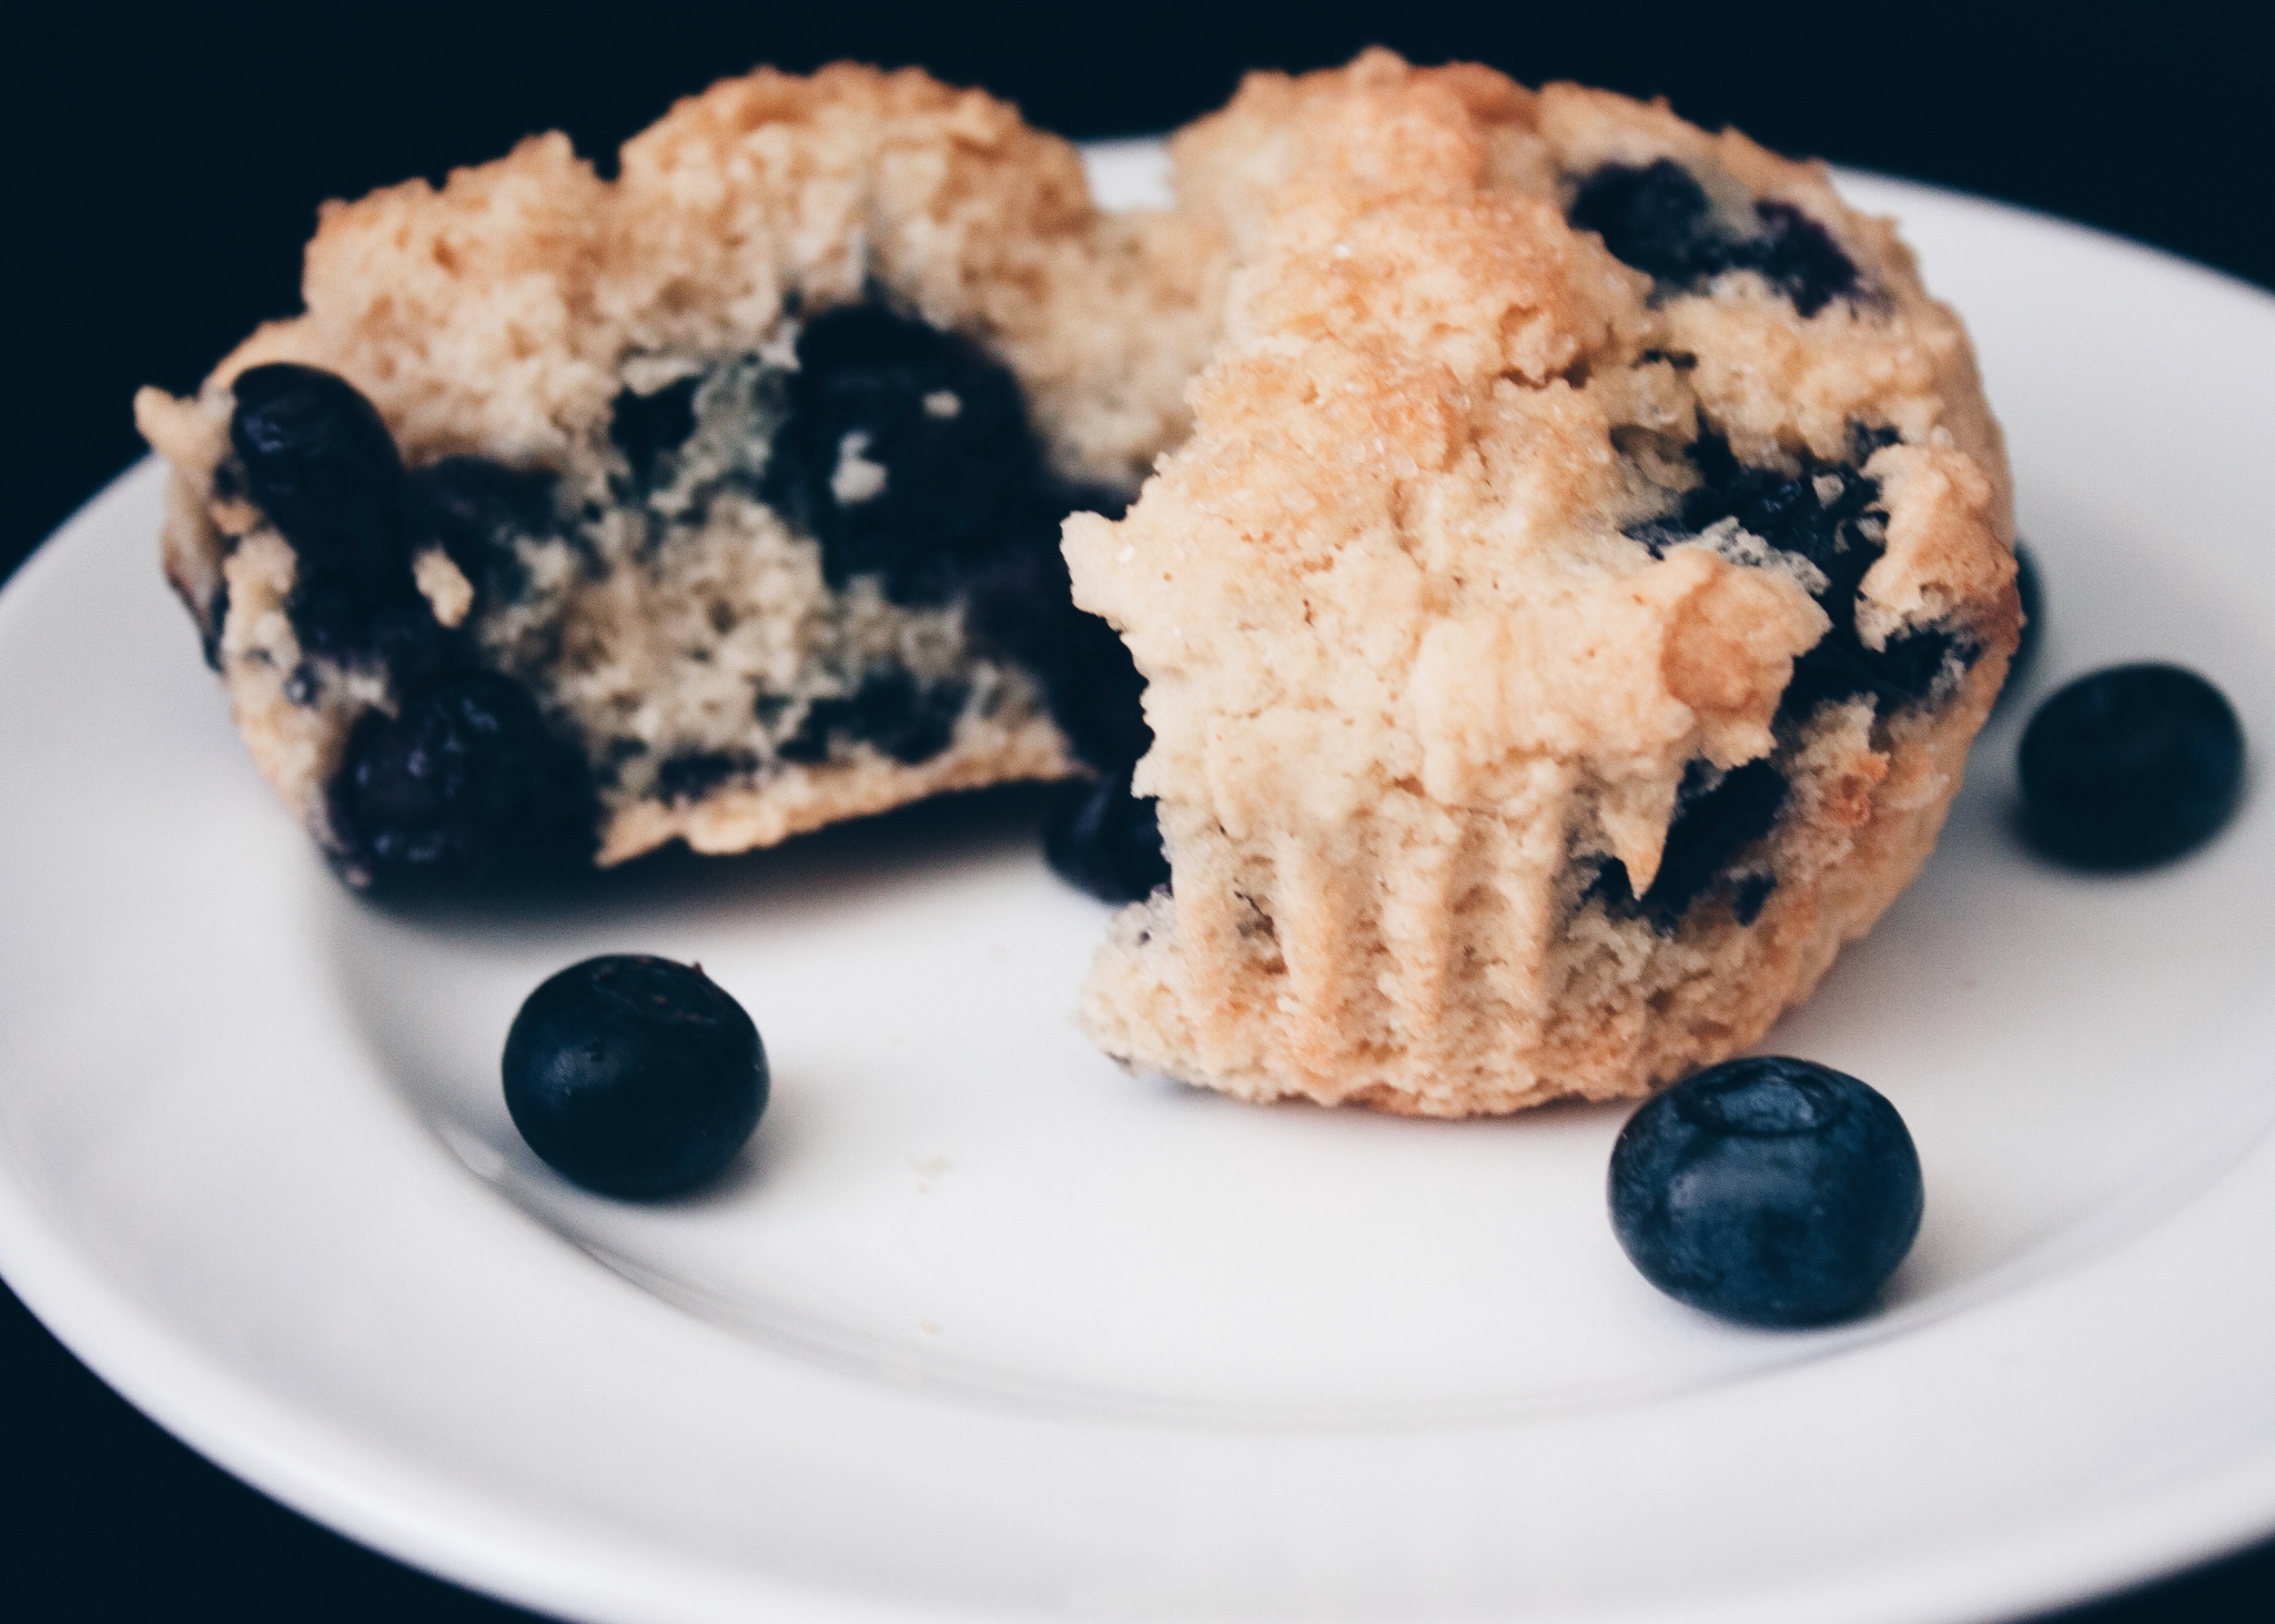 sam-c-perry-Easy-Gluten-Free-Blueberry-Biscuits-5.jpg